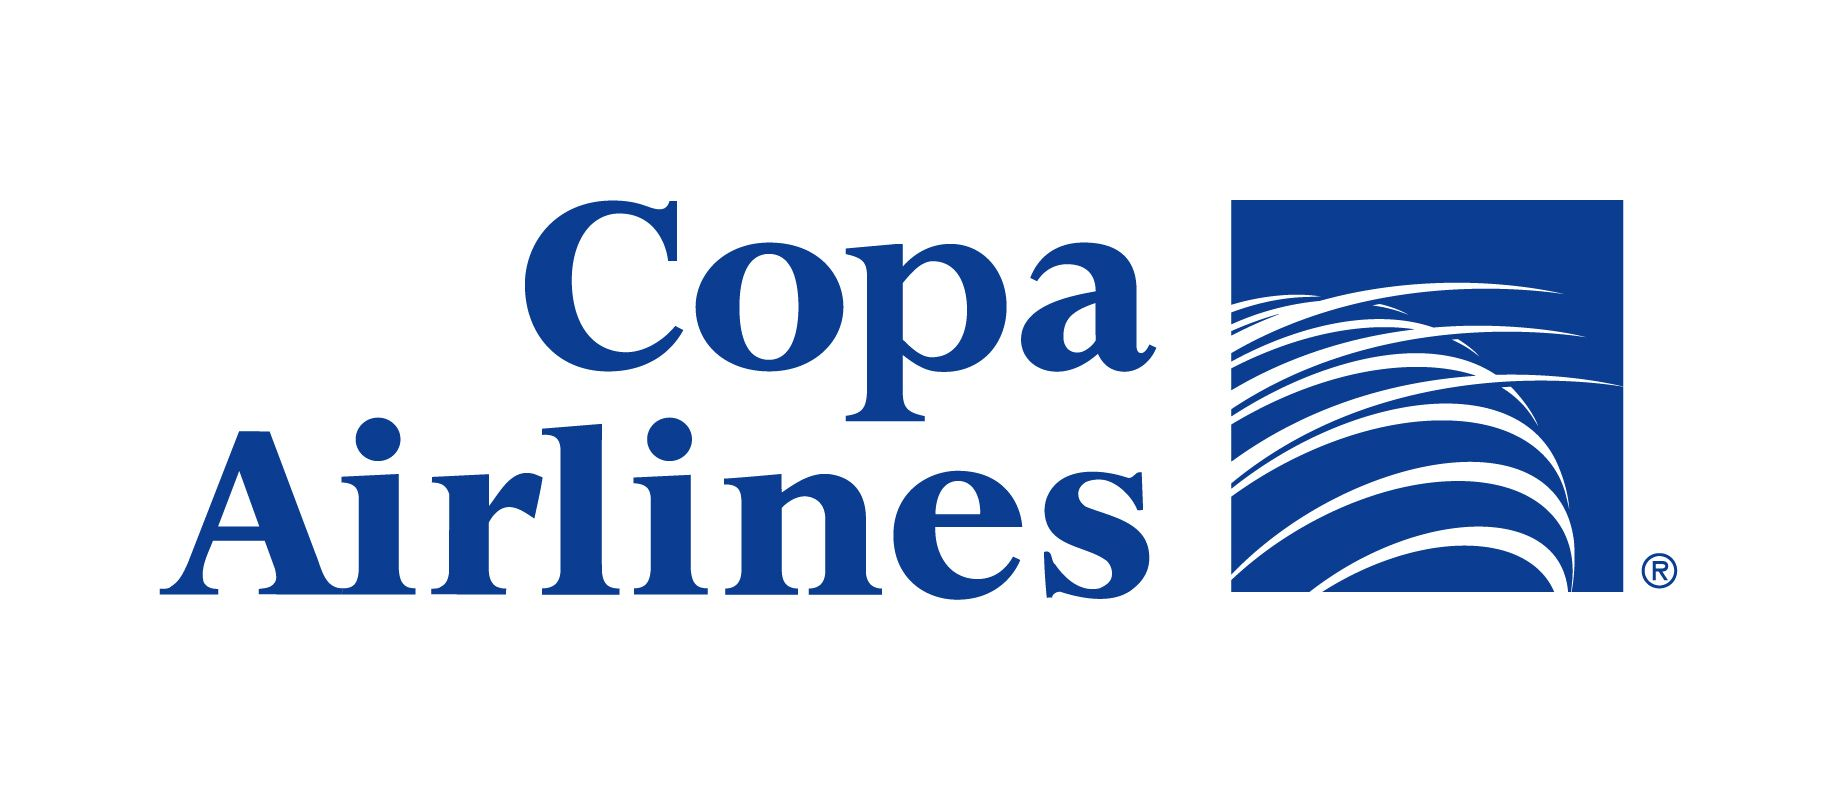 Copa Airlines Panama On Pinterest Gt Gt Copa Airlines